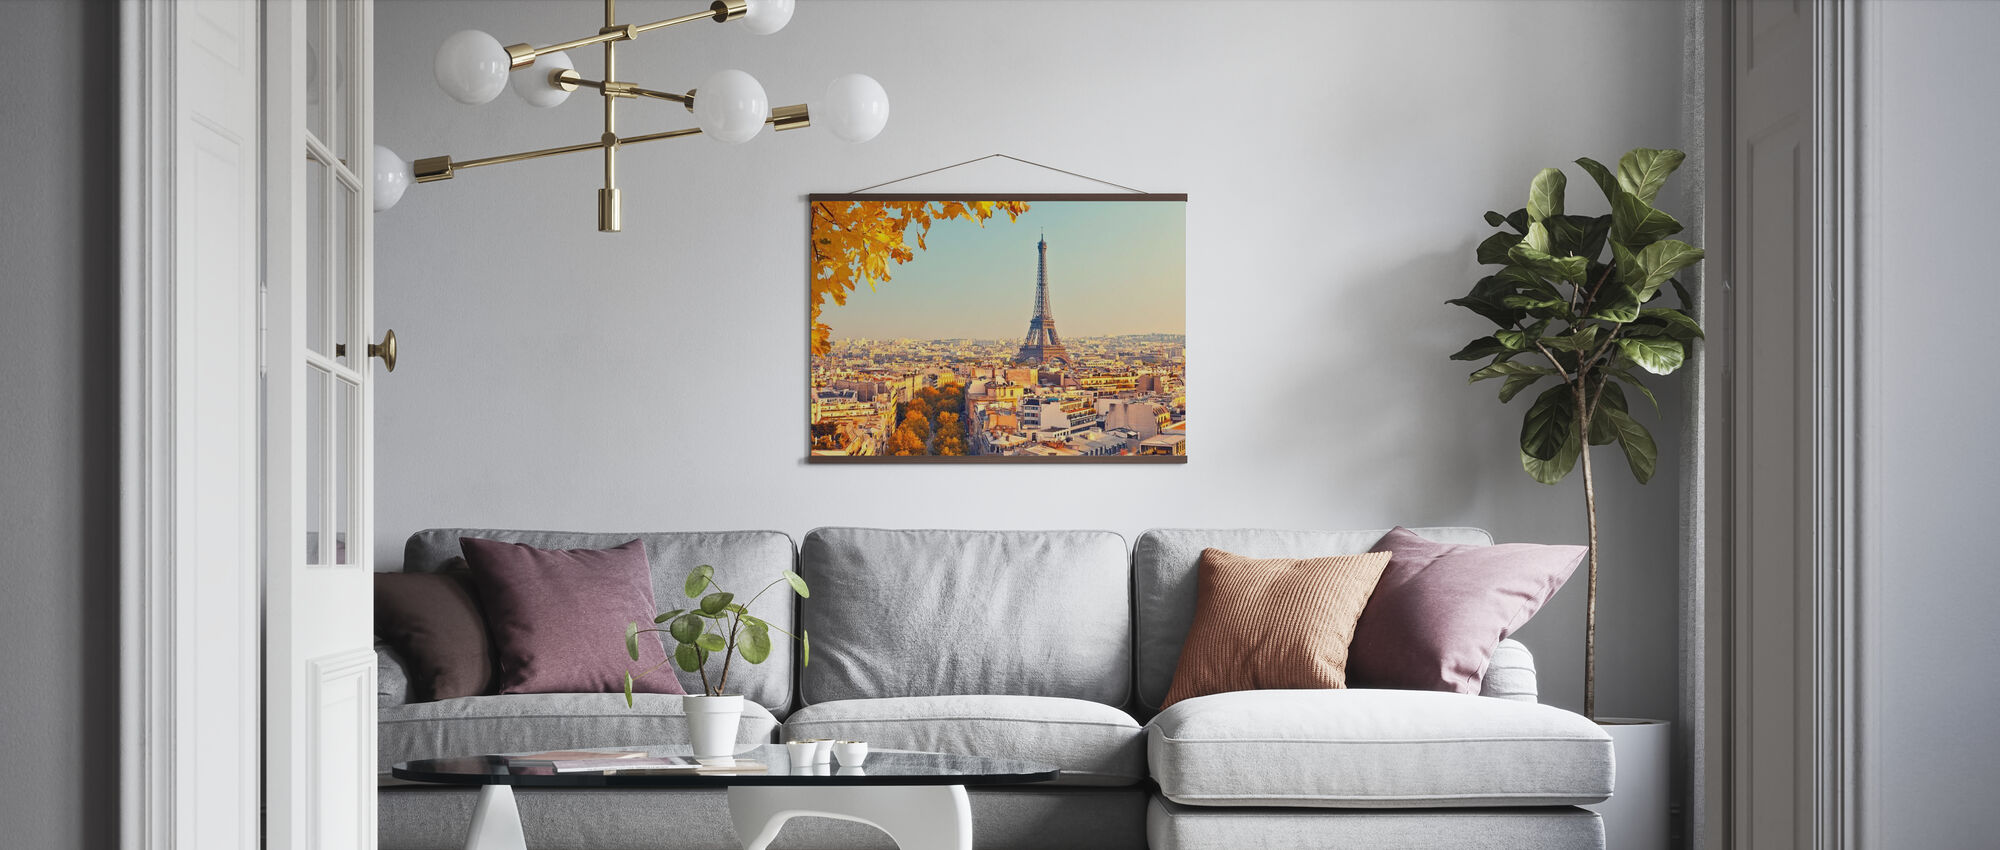 Eiffel Tower Autumn View - Poster - Living Room